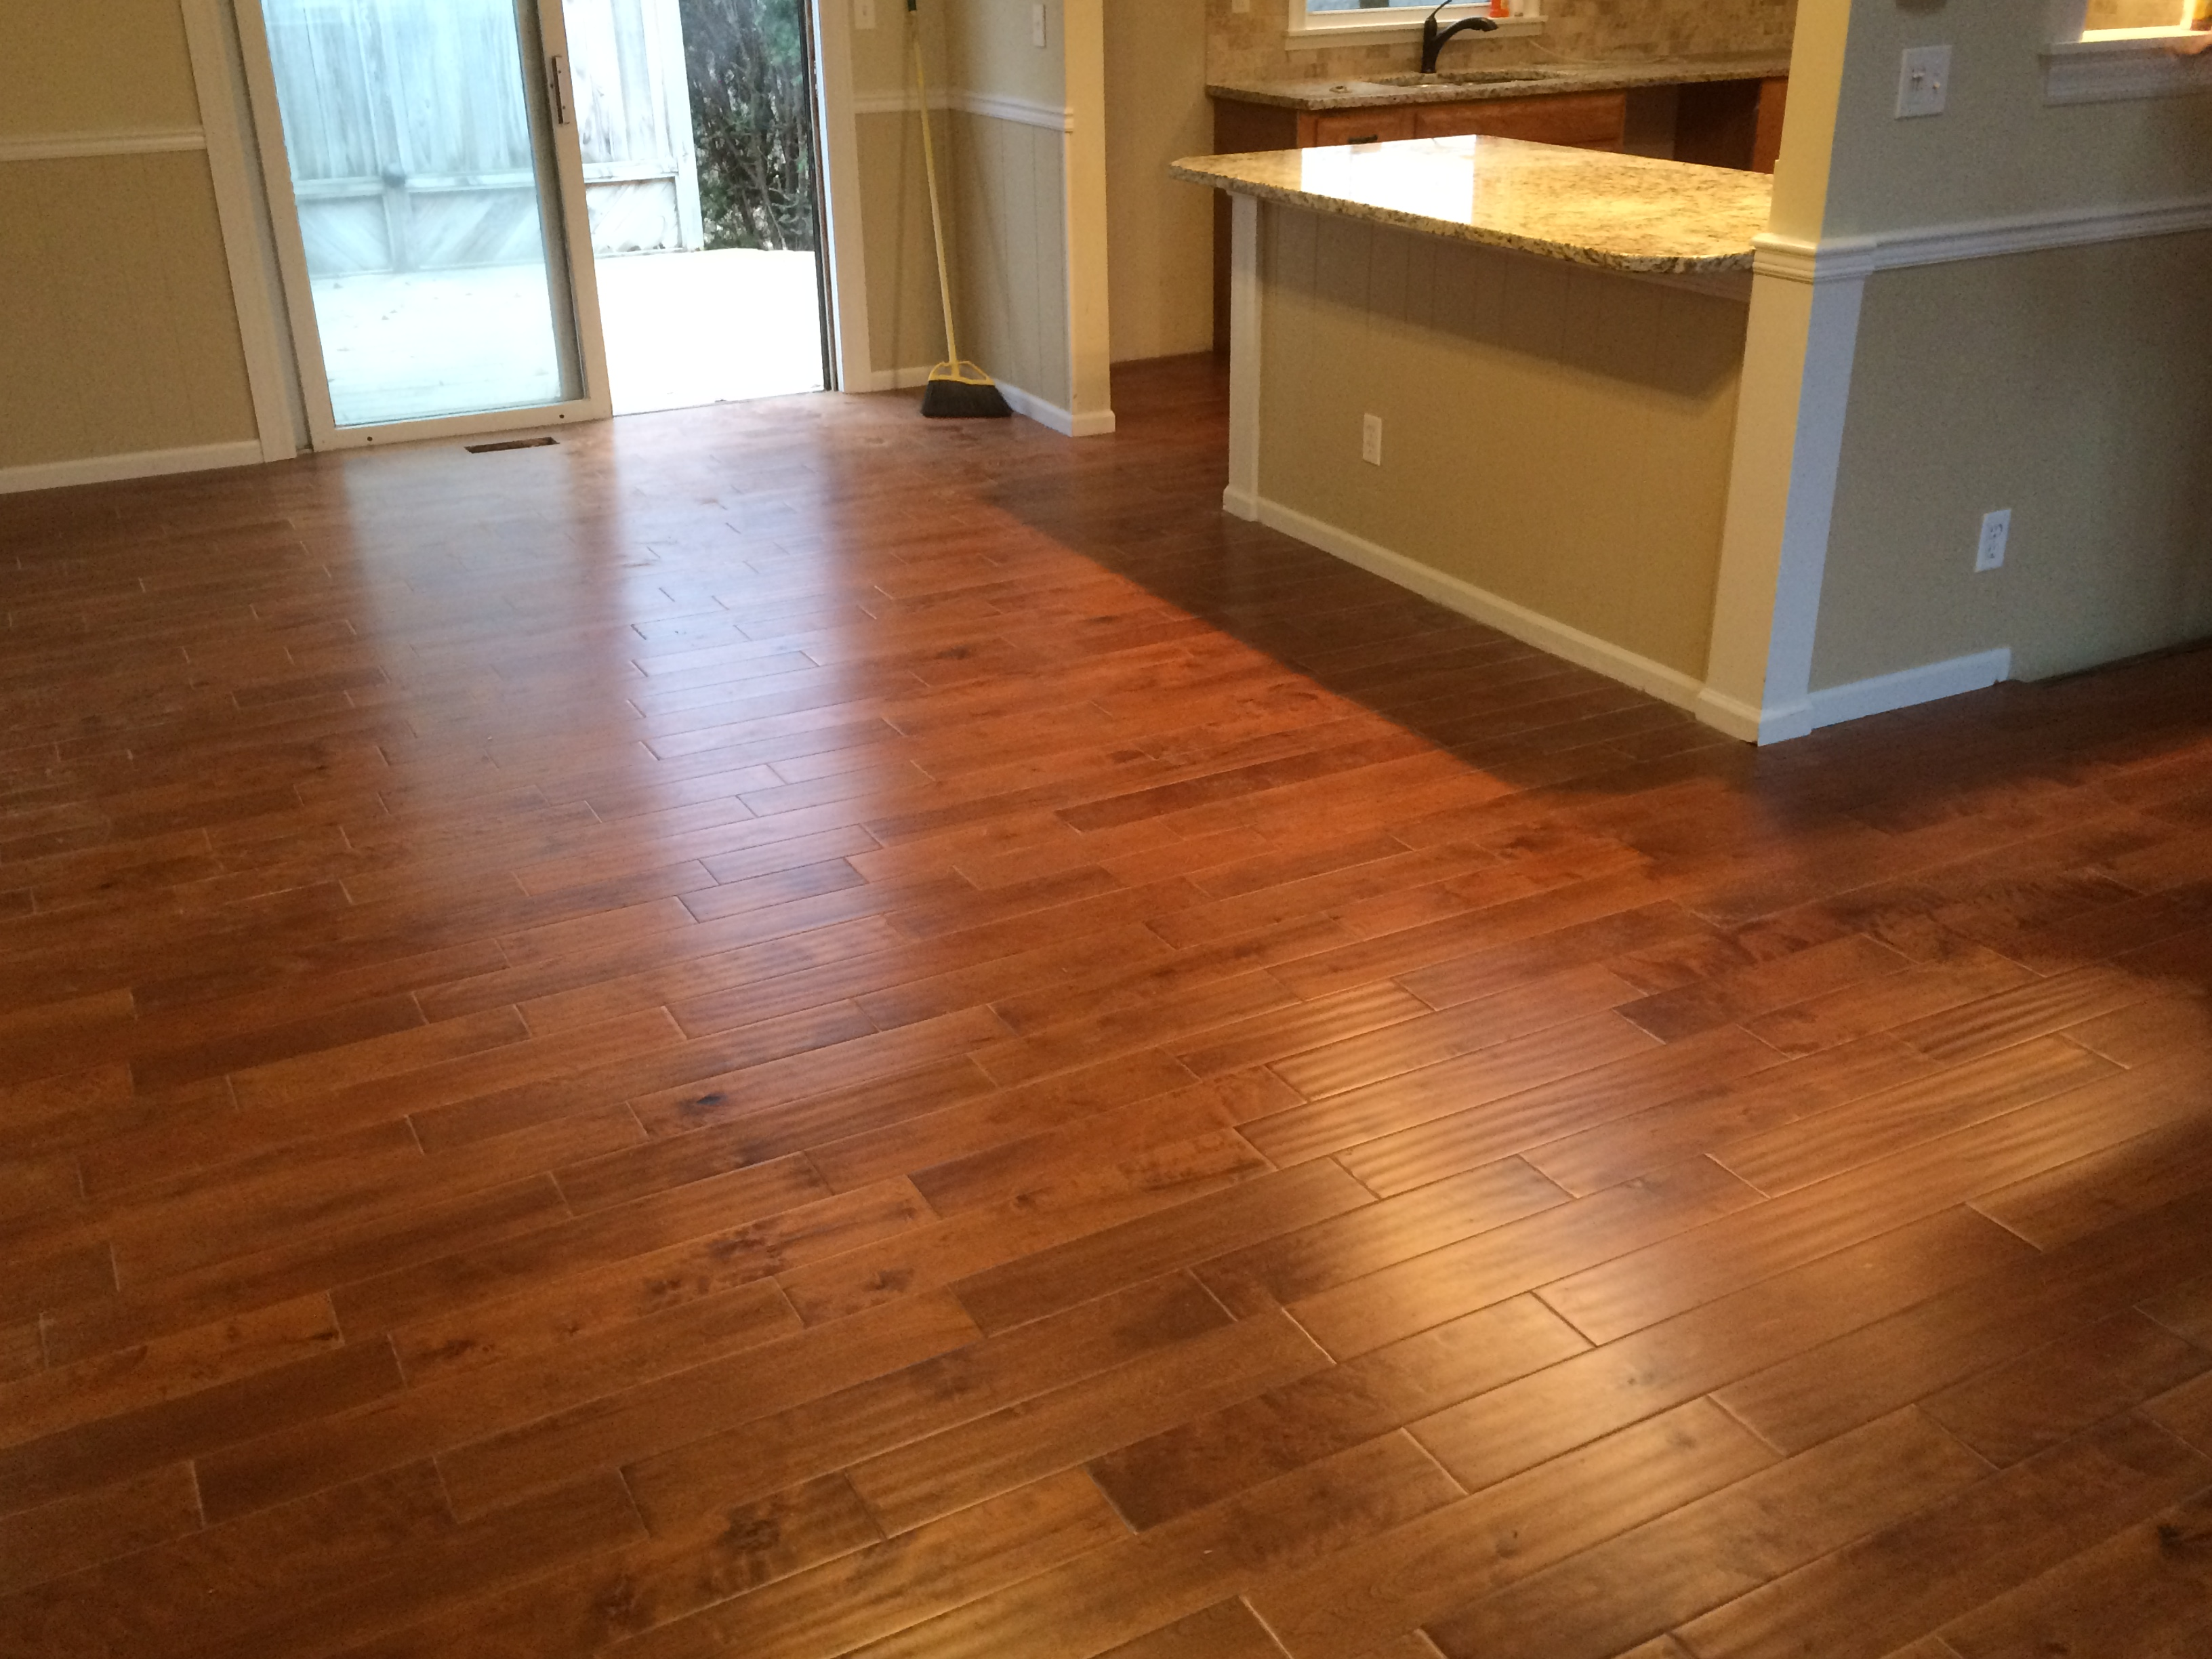 burlington hardwood 2 b b family flooring